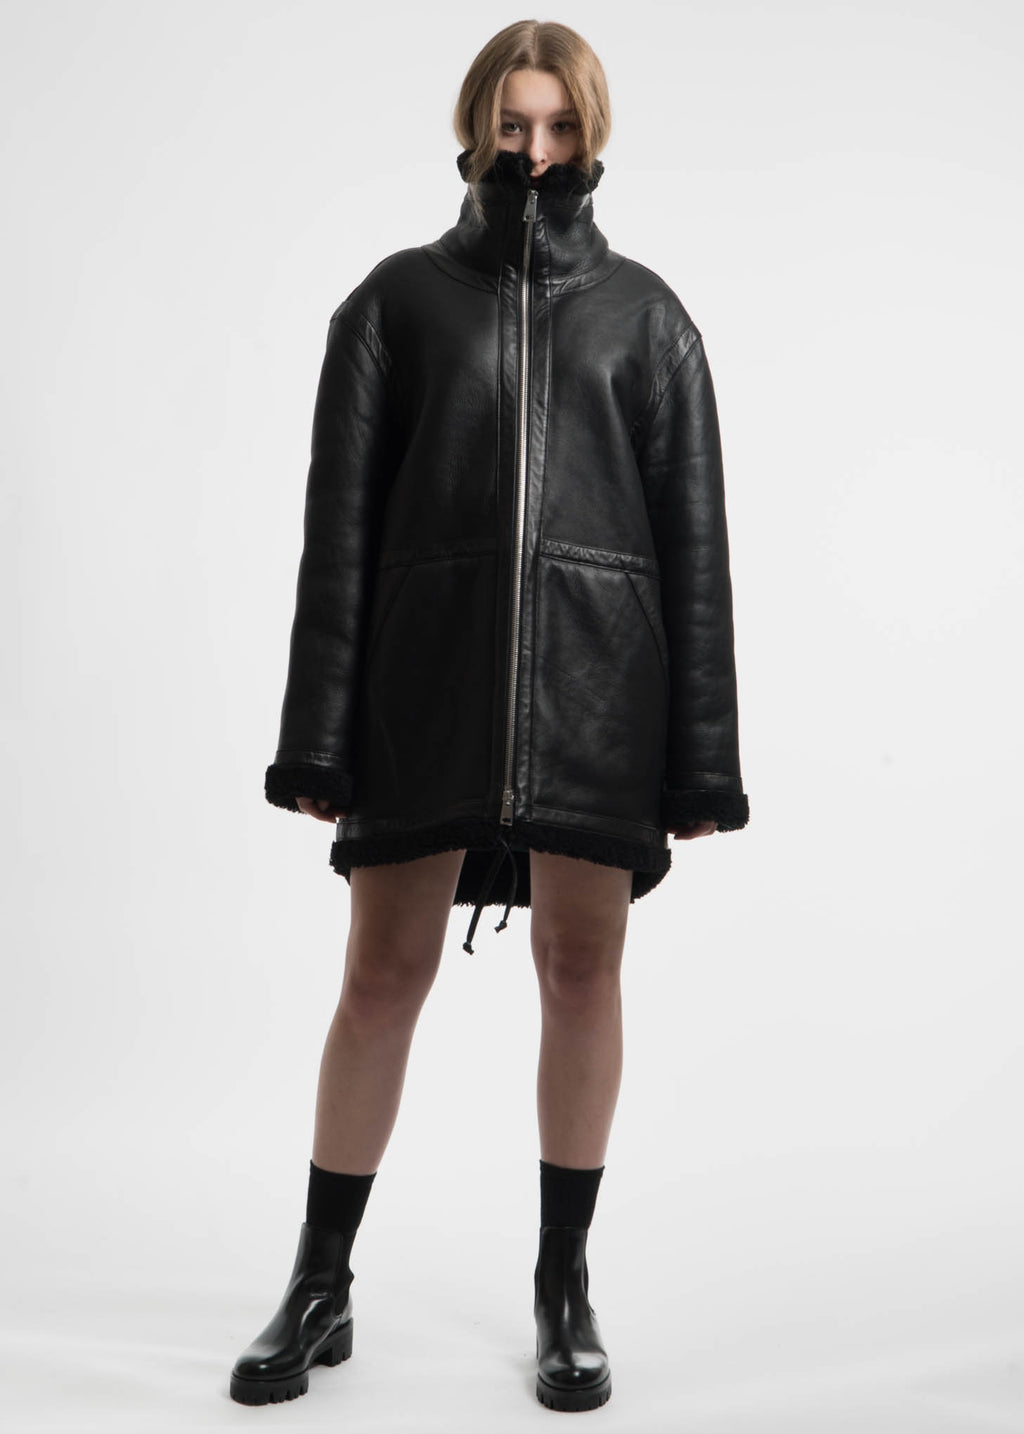 Etudes, Black Address Shearling Jacket, 017 Shop